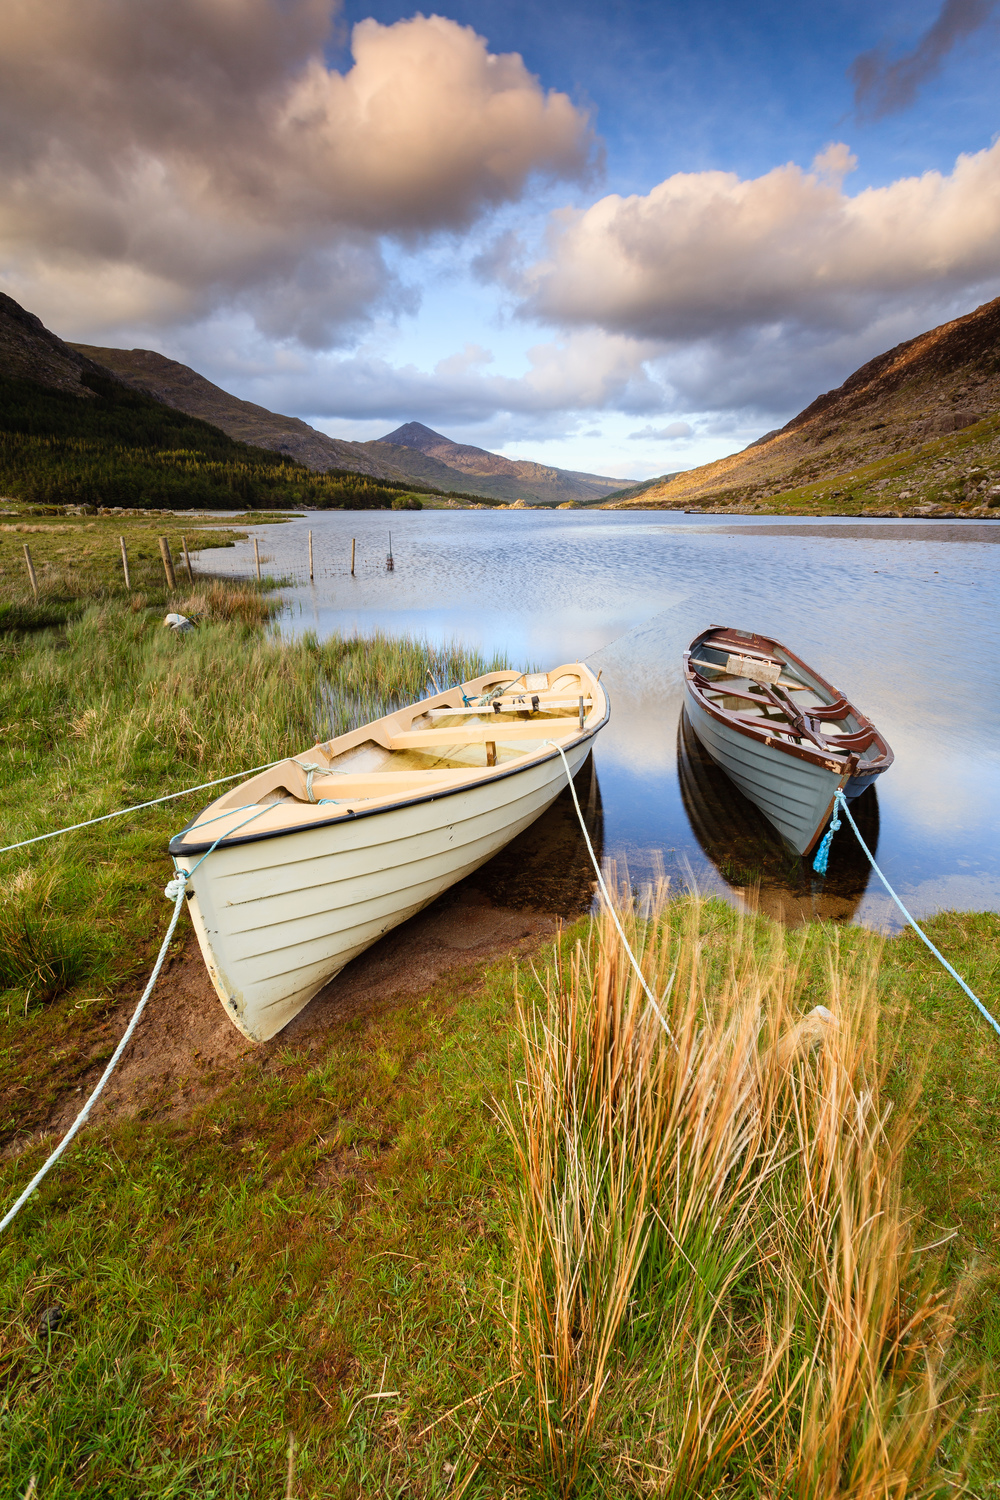 The Boats at Lough Gummeenduff